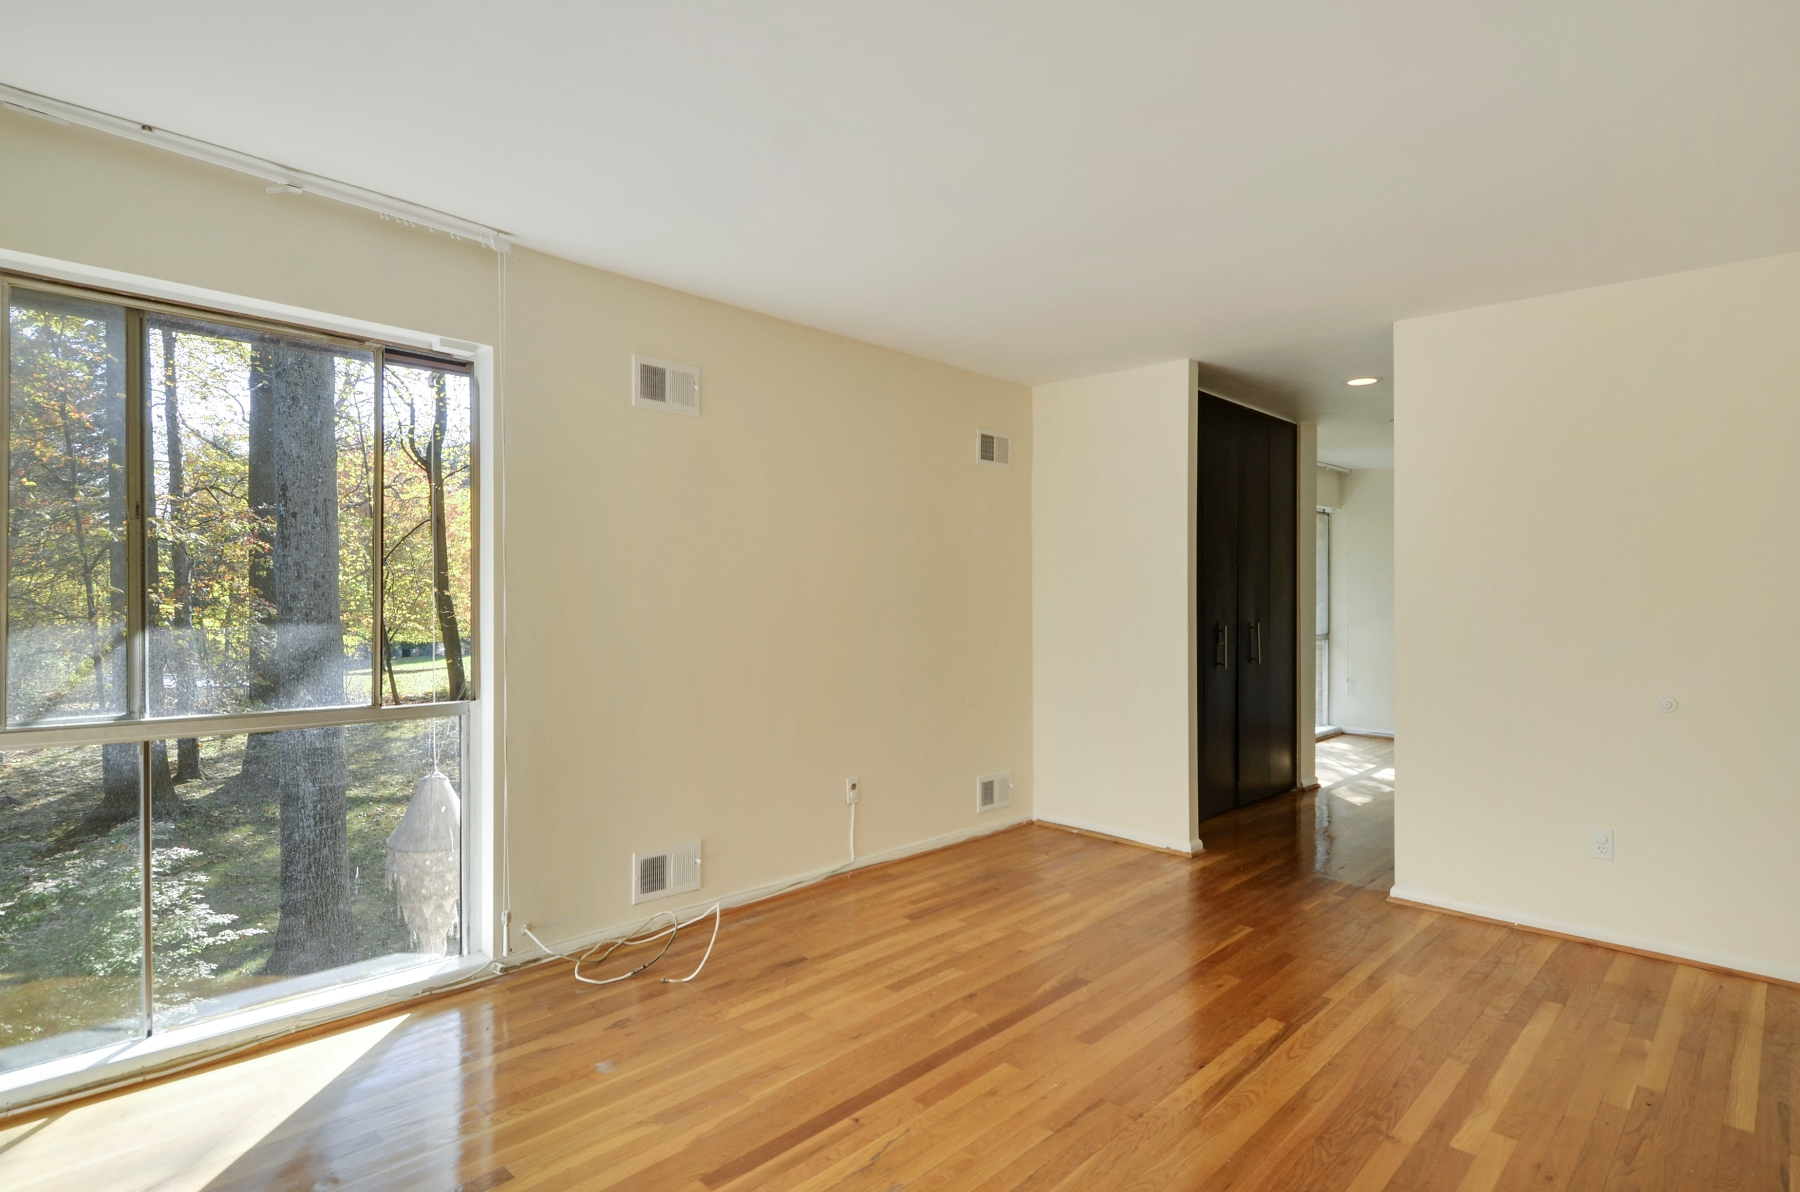 Additional photo for property listing at 4 Delford Avenue, Silver Spring  Silver Spring, メリーランド 20904 アメリカ合衆国